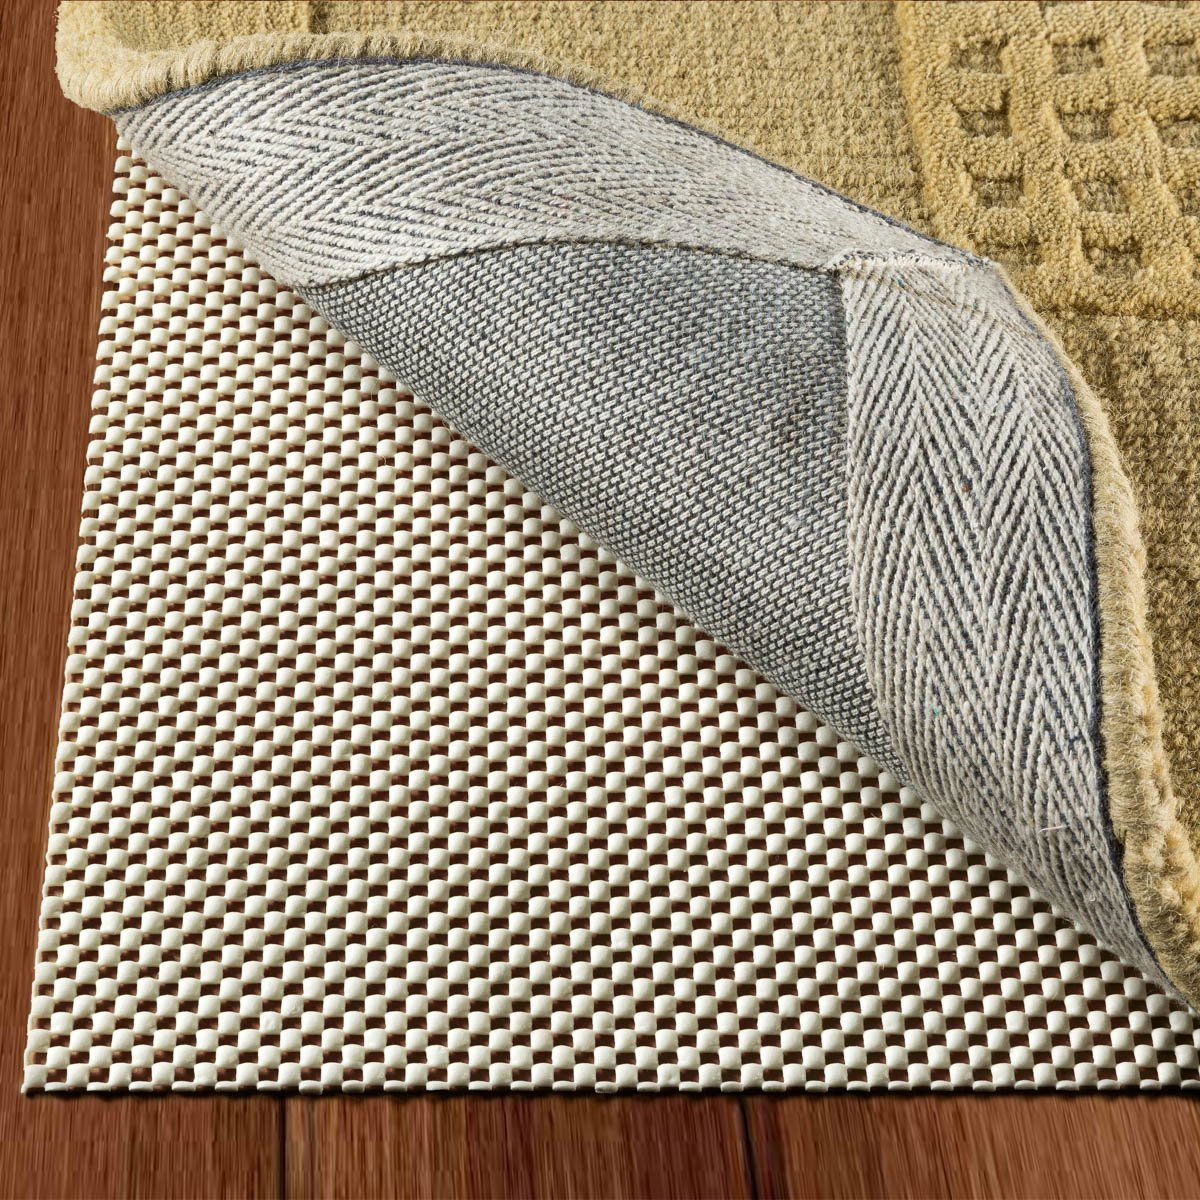 Non Slip Area Rug Pad Size 2 x 3 Extra Strong Grip Thick Padding And High Quality Double Check Products COMINHKPR110899